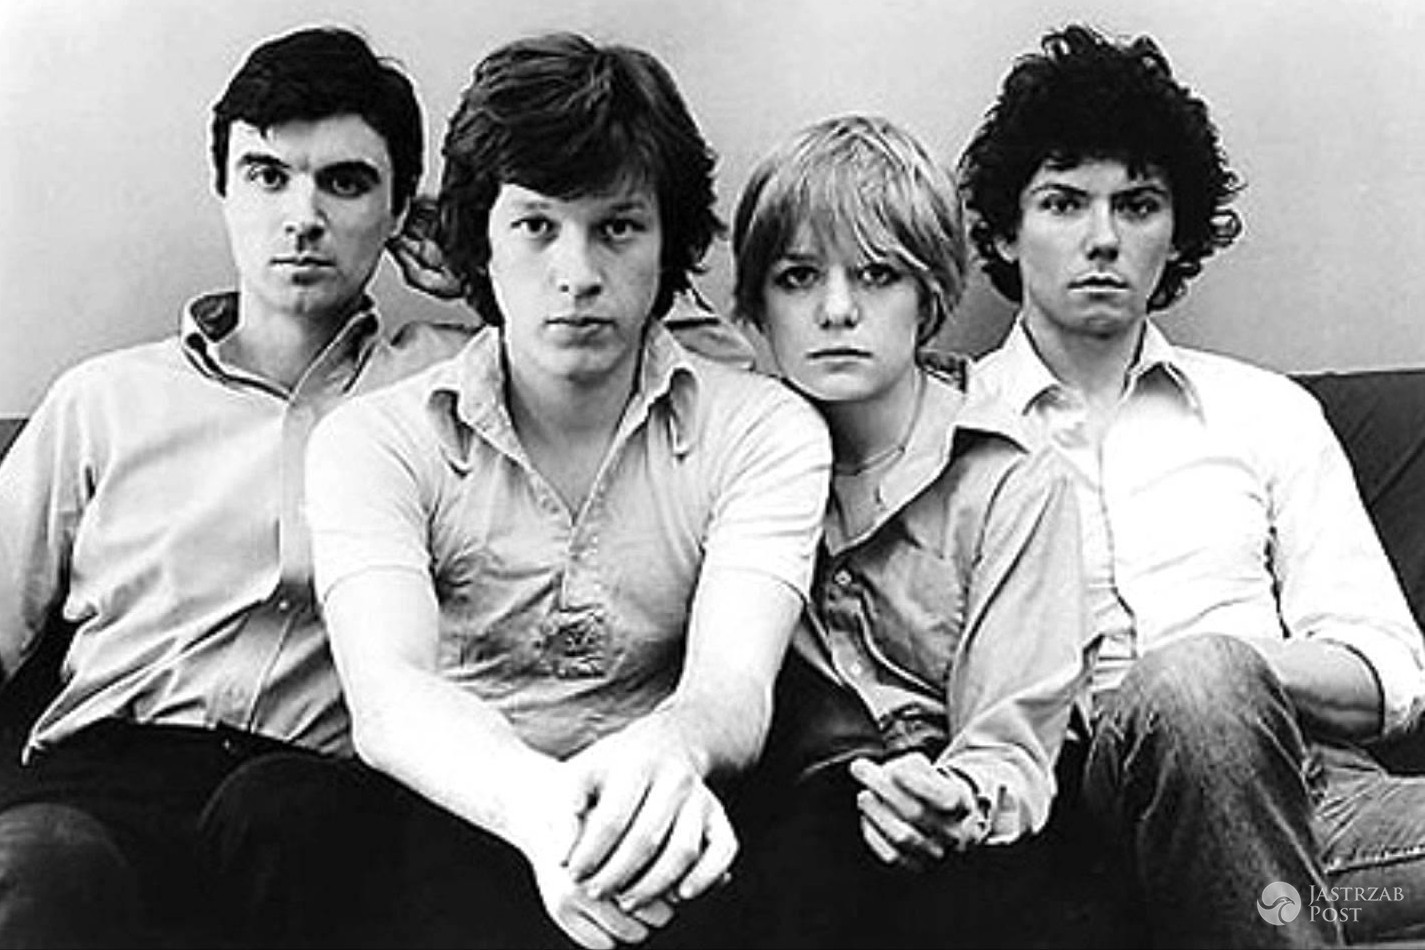 Piosenka z serialu Belle Epoque Talking Heads Psycho Killer